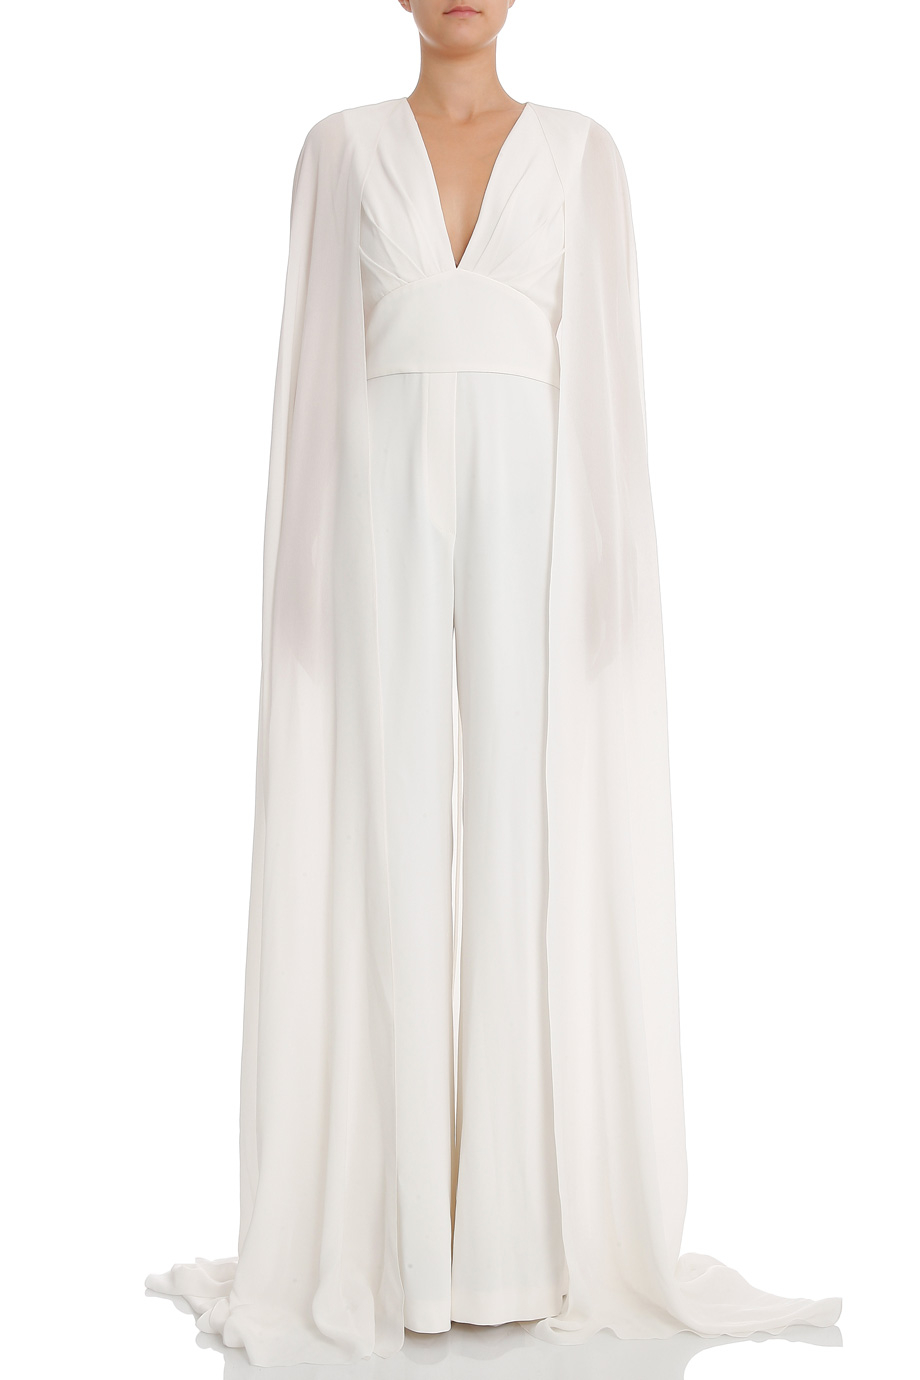 Lyst Elie Saab Bklss Jumpsuit With Train In White